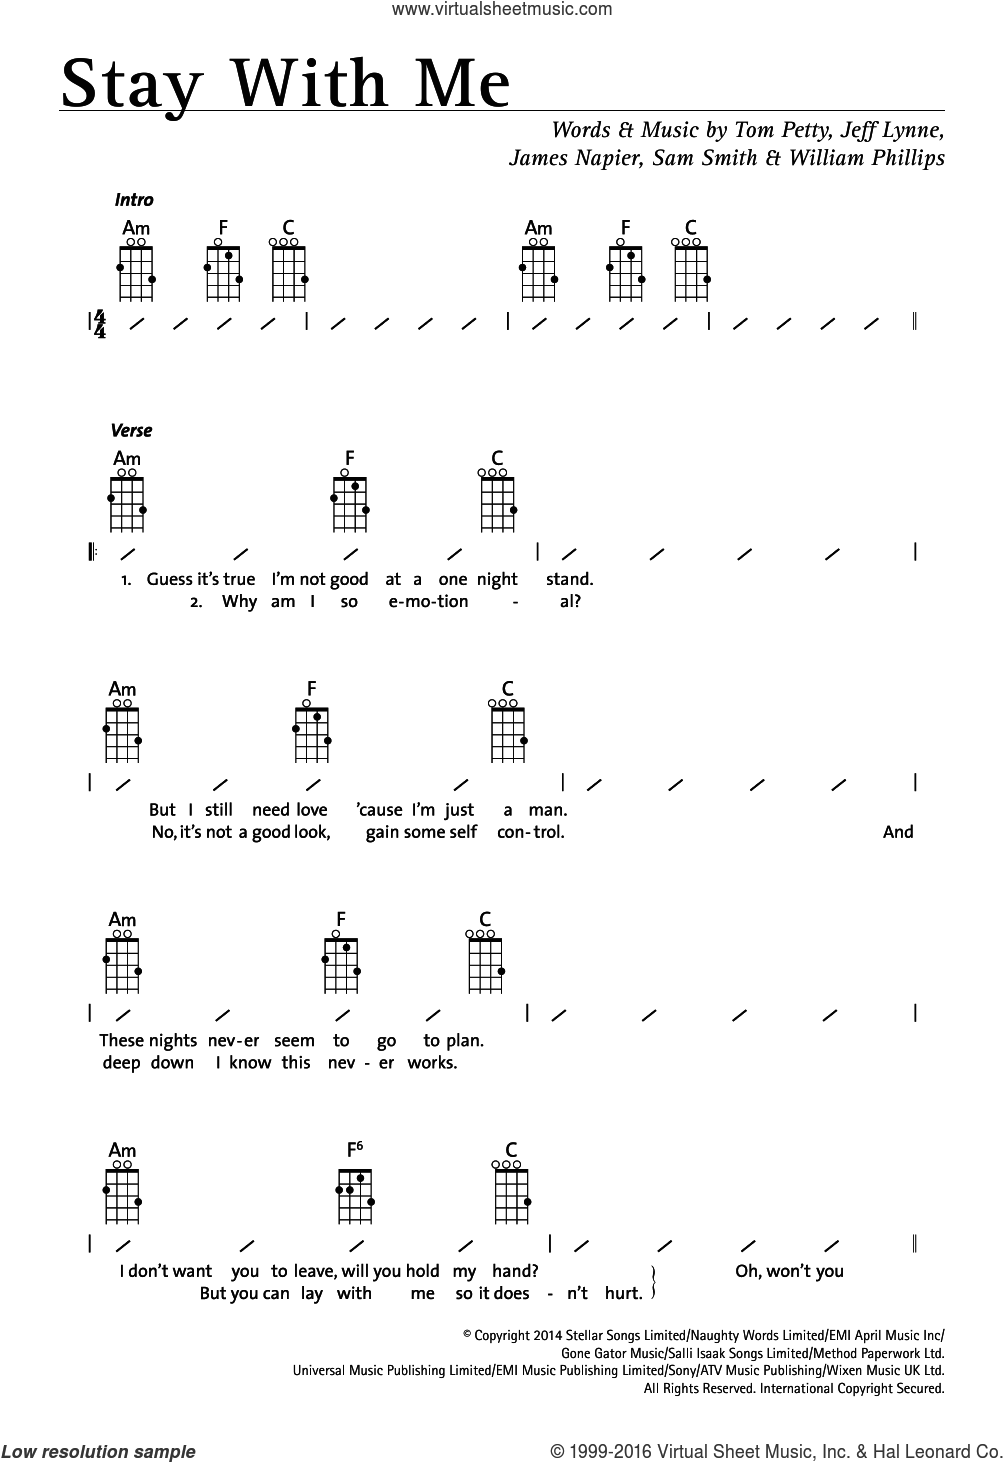 Stay With Me sheet music for ukulele (chords) by Sam Smith, James Napier, Jeff Lynne, Tom Petty and William Phillips, intermediate skill level